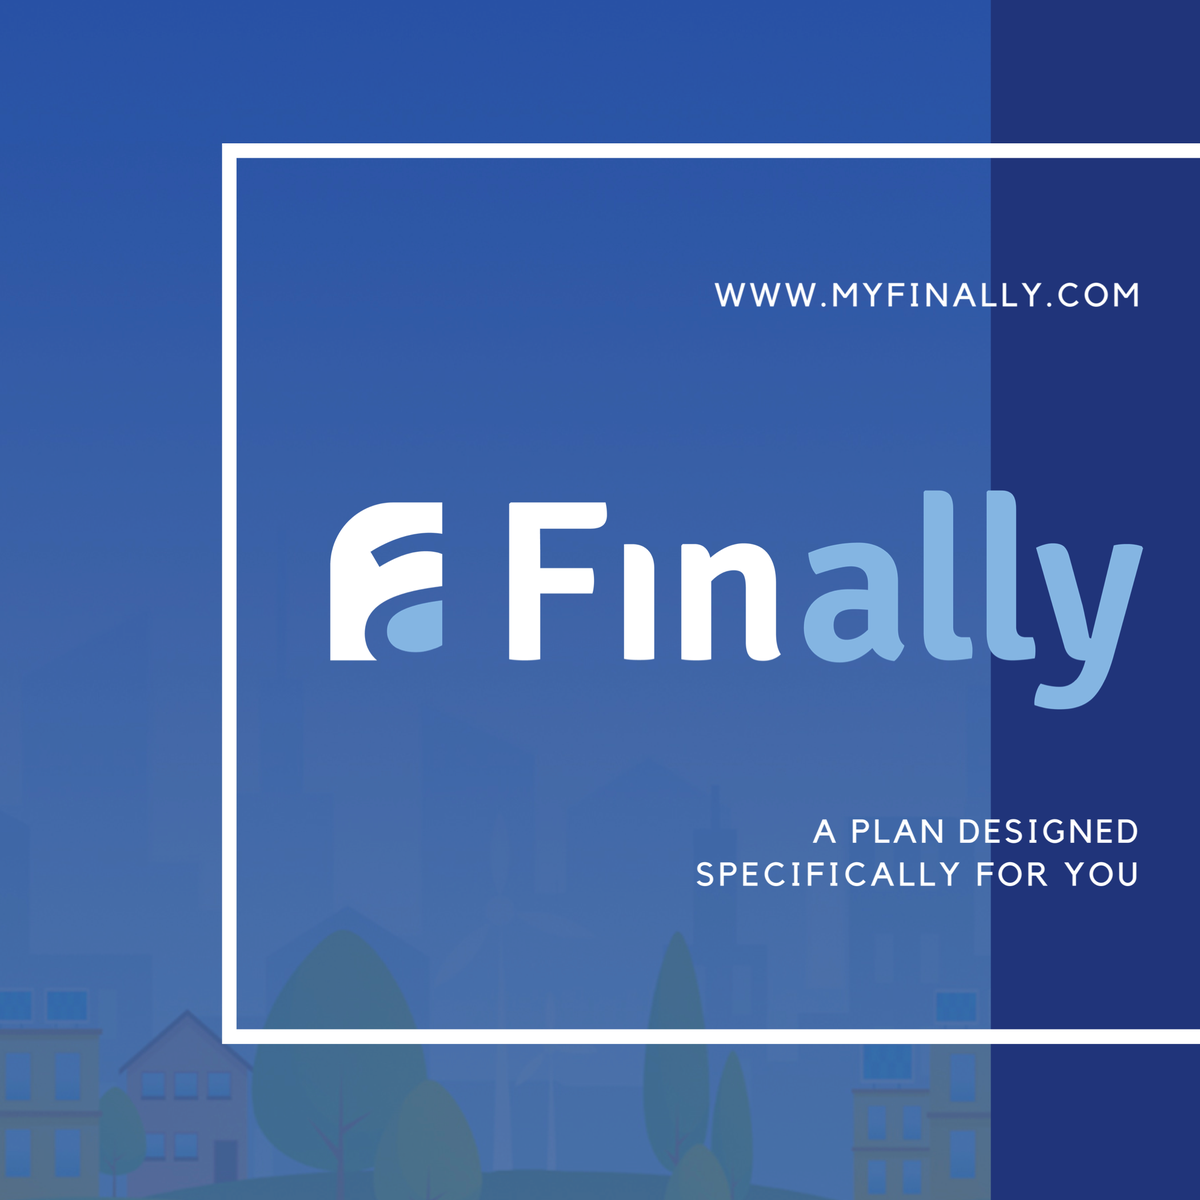 Everyone is different and your financial plan should reflect that. Get personalized advice for free.  Sign up at https://t.co/Au3DUhefji  - #finance #financialadvisor #startup #fintech #canada #financial plan #financialservice #easyfinance #financeplan #wealthadvisor… https://t.co/kQe9BhbpZn